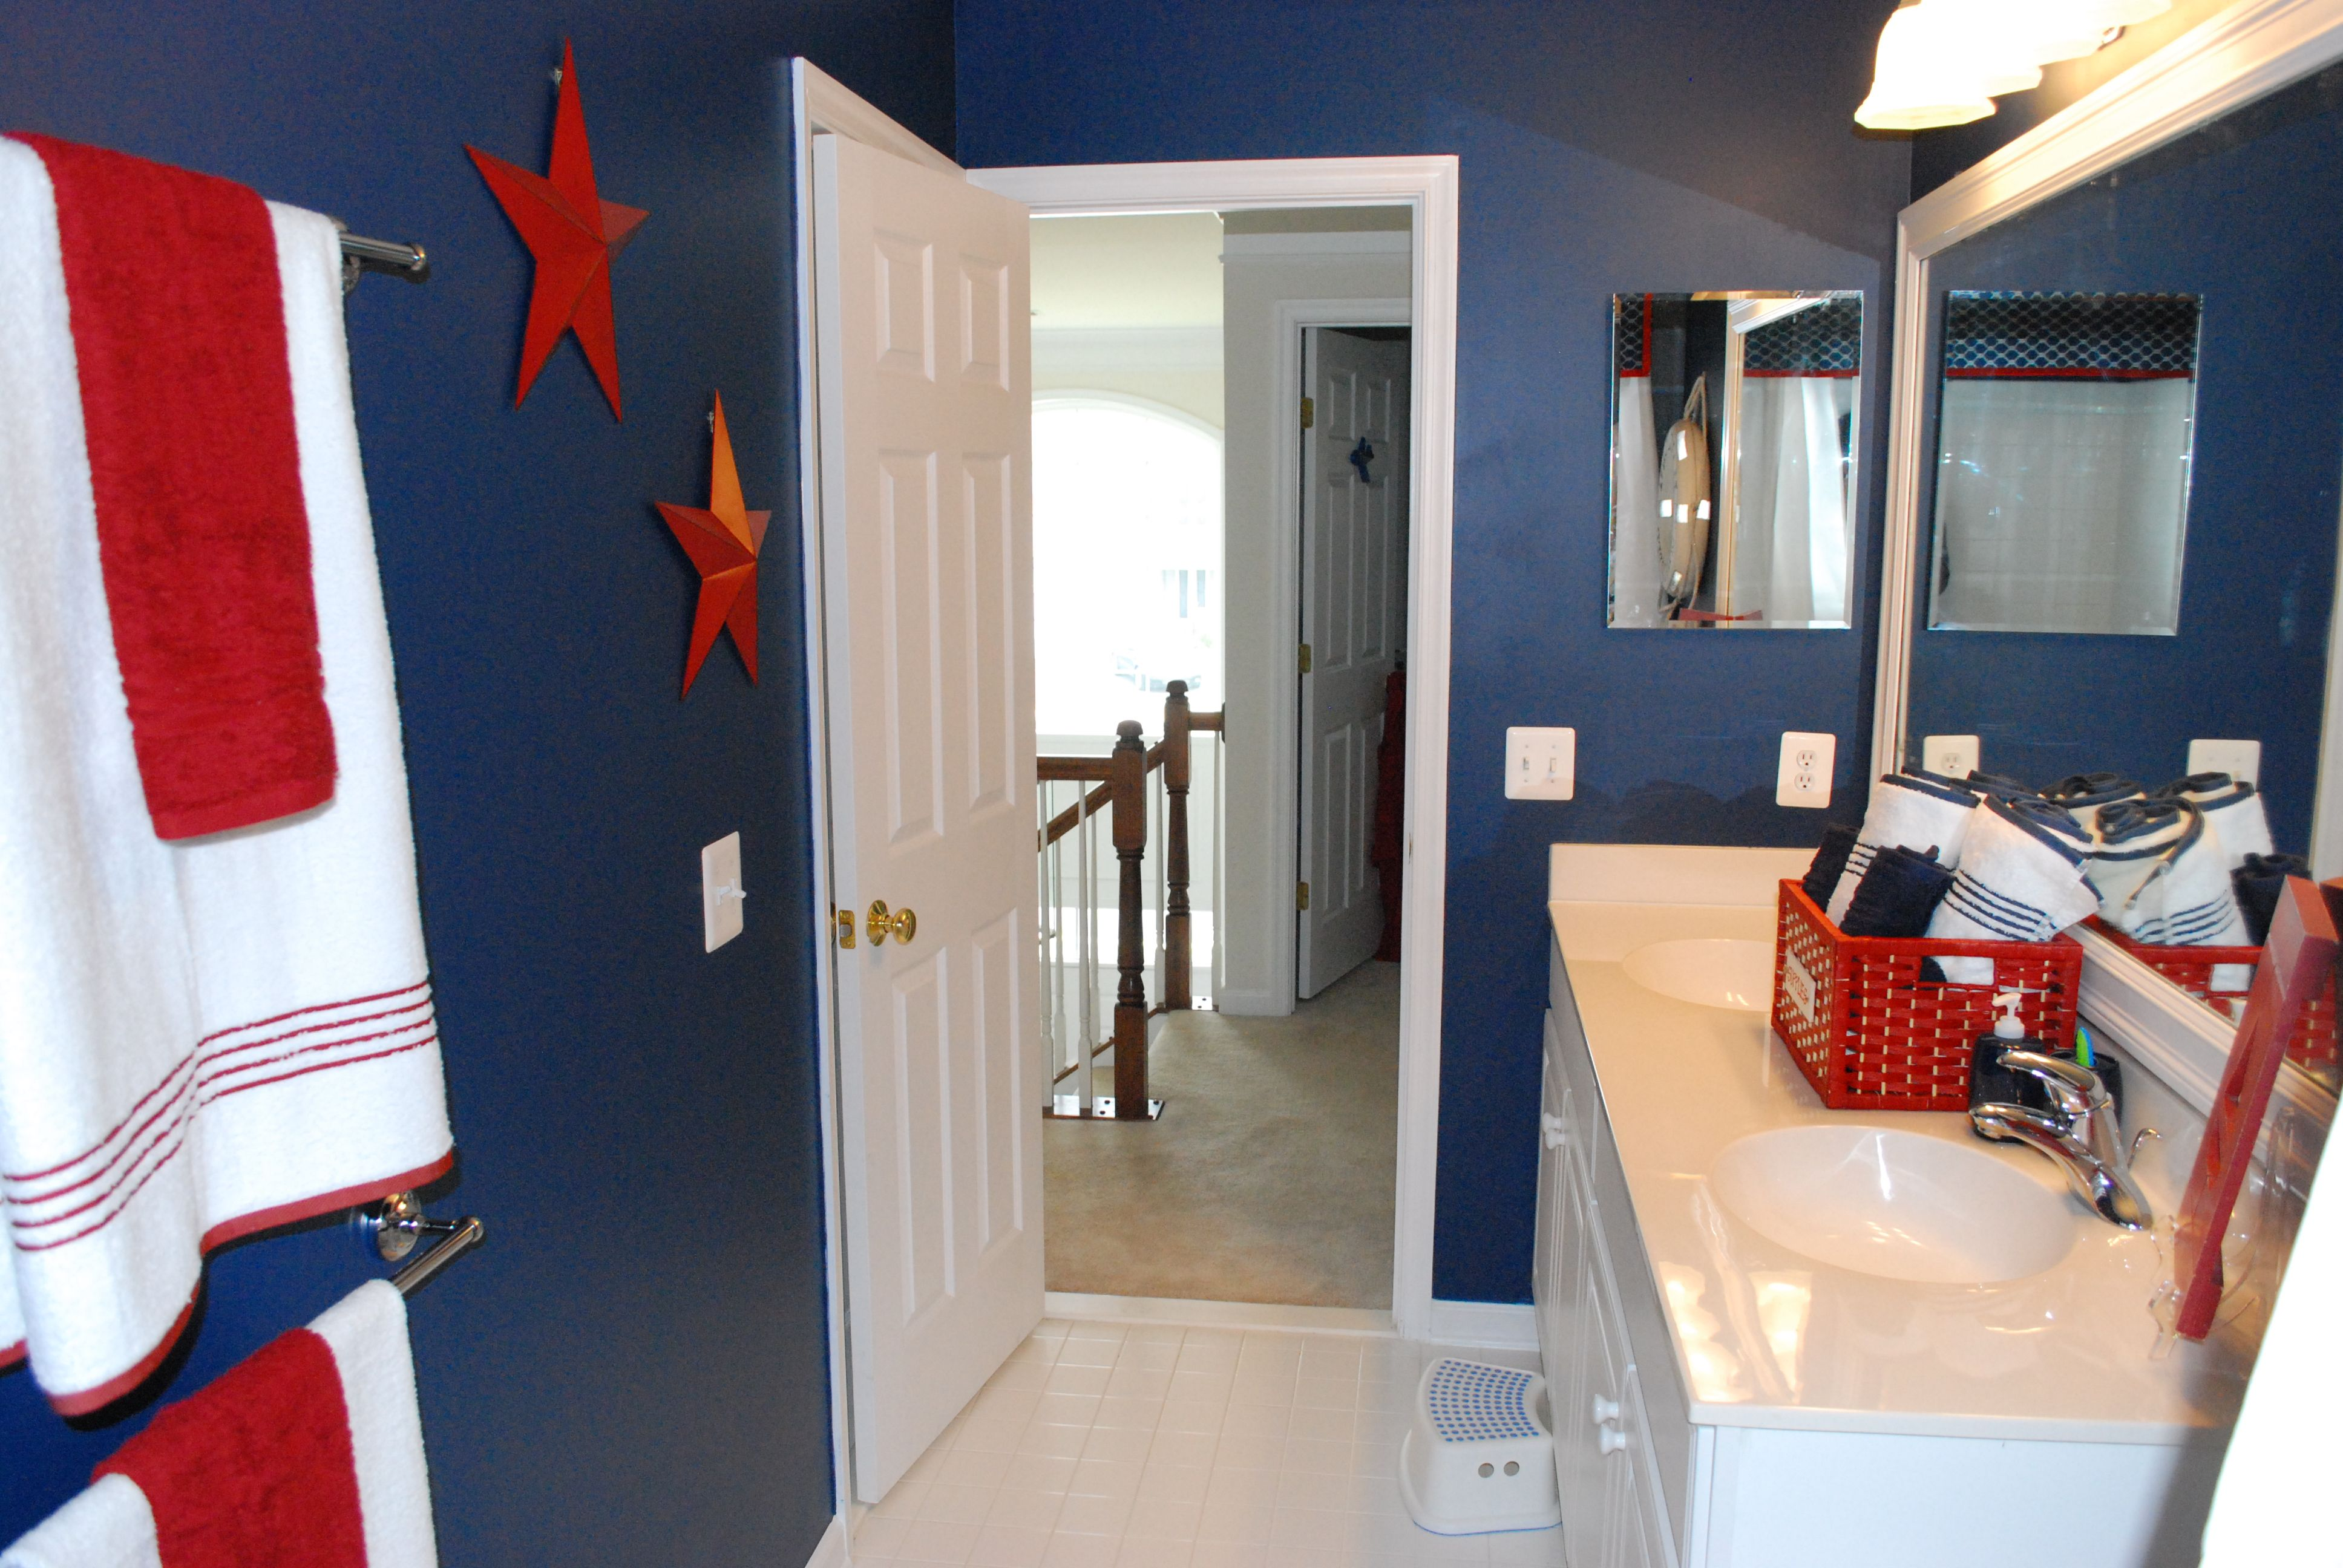 Sailor Themed Bathroom So I Wanted To Share My Almost Complete Boys Nautical